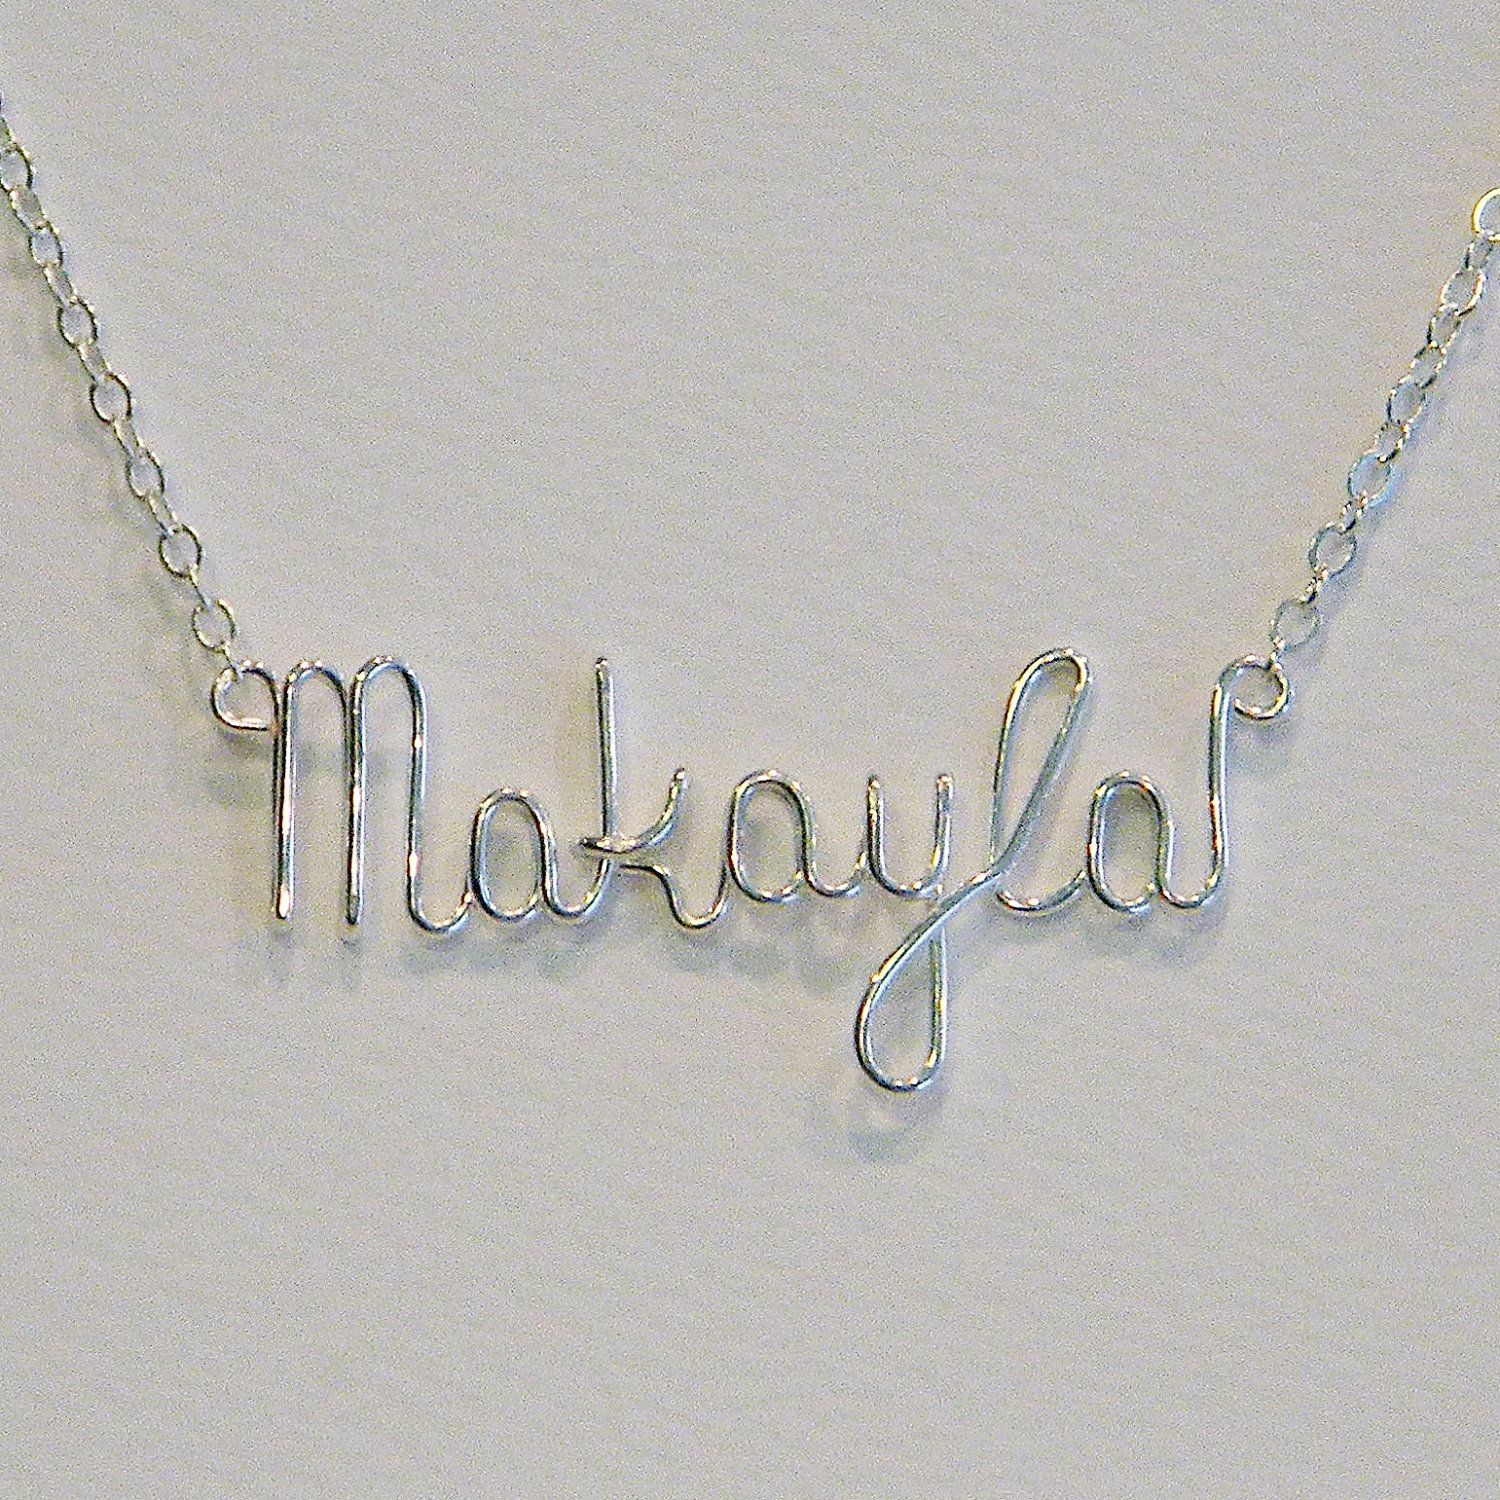 script baby walmart hollywood name com over ip or sterling chains silver personalized gold necklace